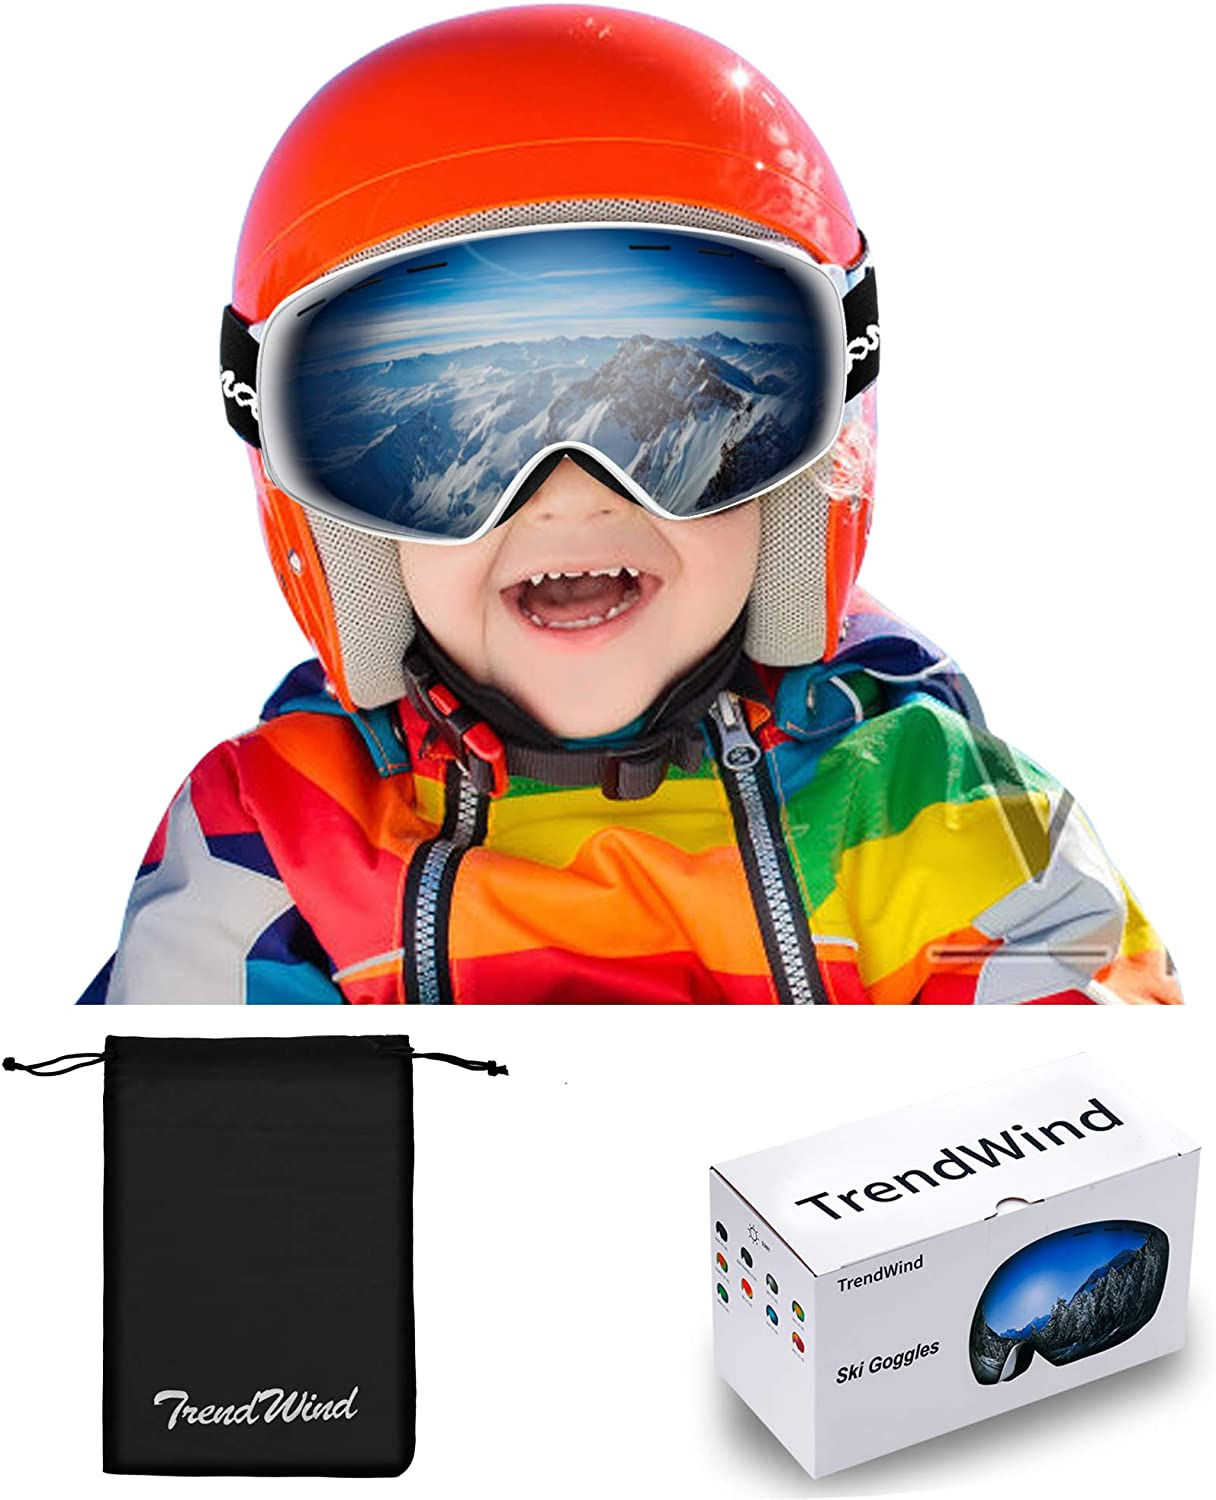 OutsideToe Ski Goggles 1 Pack Include Cleaning Cloth with 100/% UV400 Protection Anti-Glare Lens Wind Resistance Snowboard Goggles for Kids Boys Girls Youth Men Women